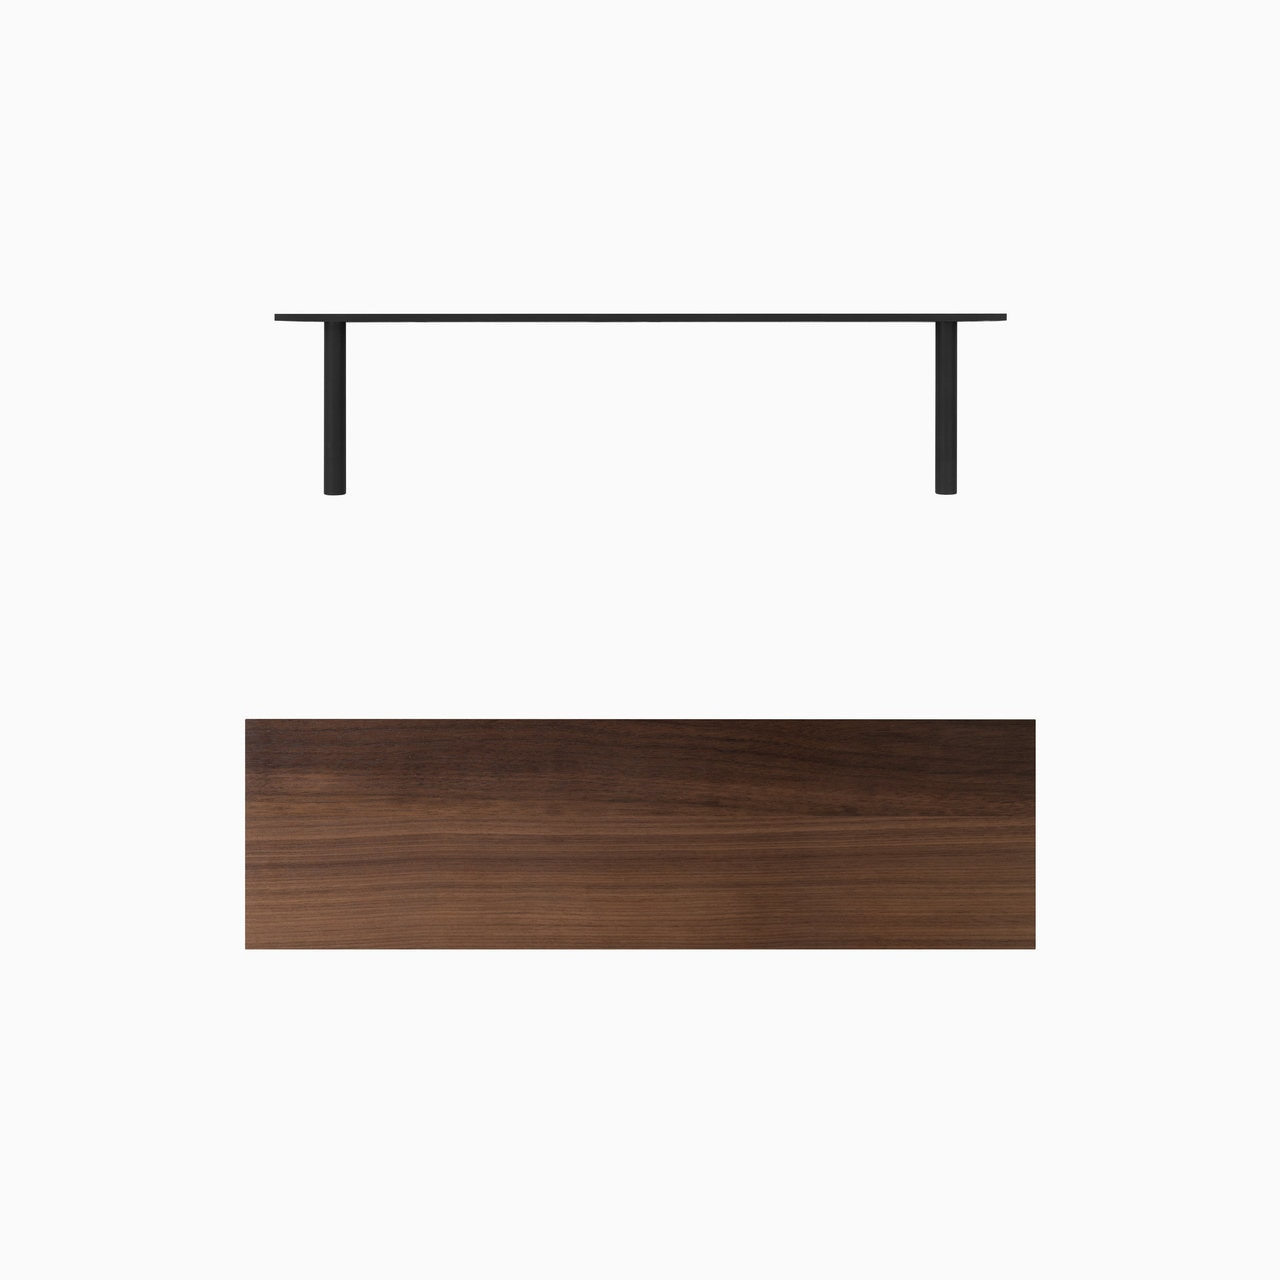 aksel nearly walnut floating shelf system shelfology parts mounting options satin finished solid perfect for diy professional choose artisan home furniture ikea storage rack metal